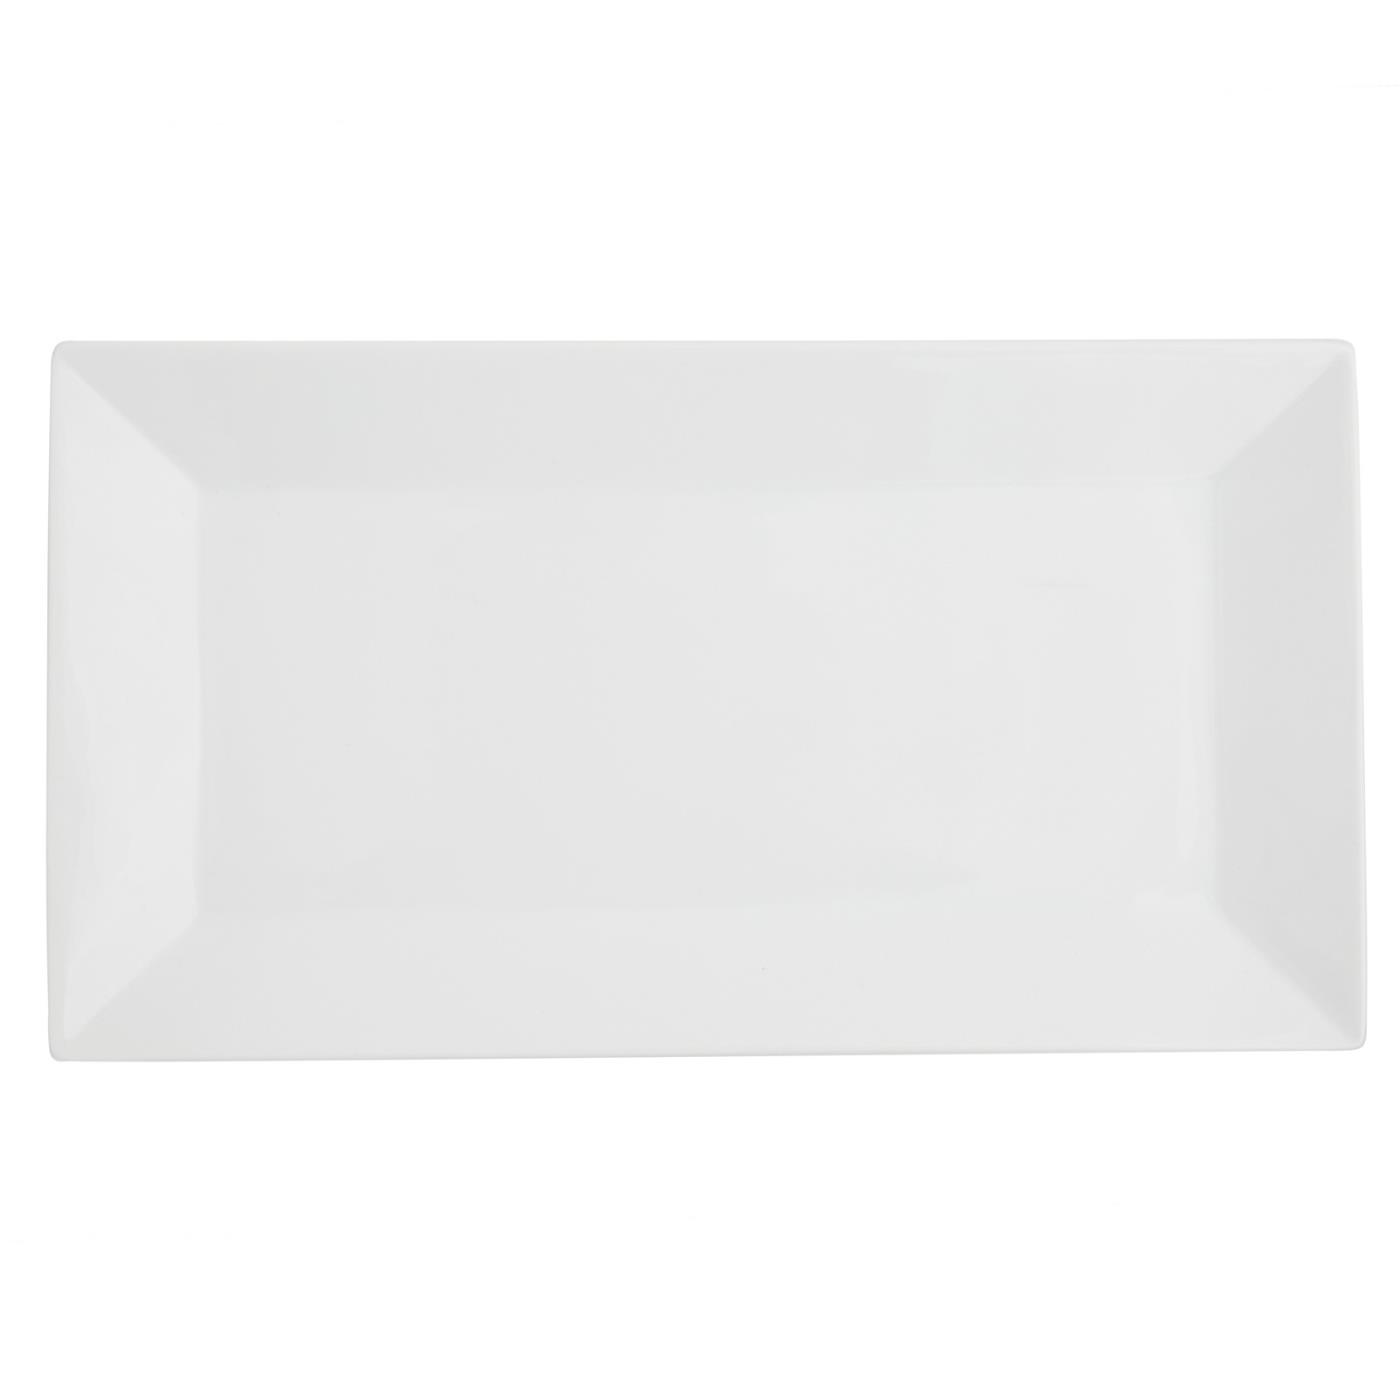 "White Rectangular -  7.25"" x 13"""